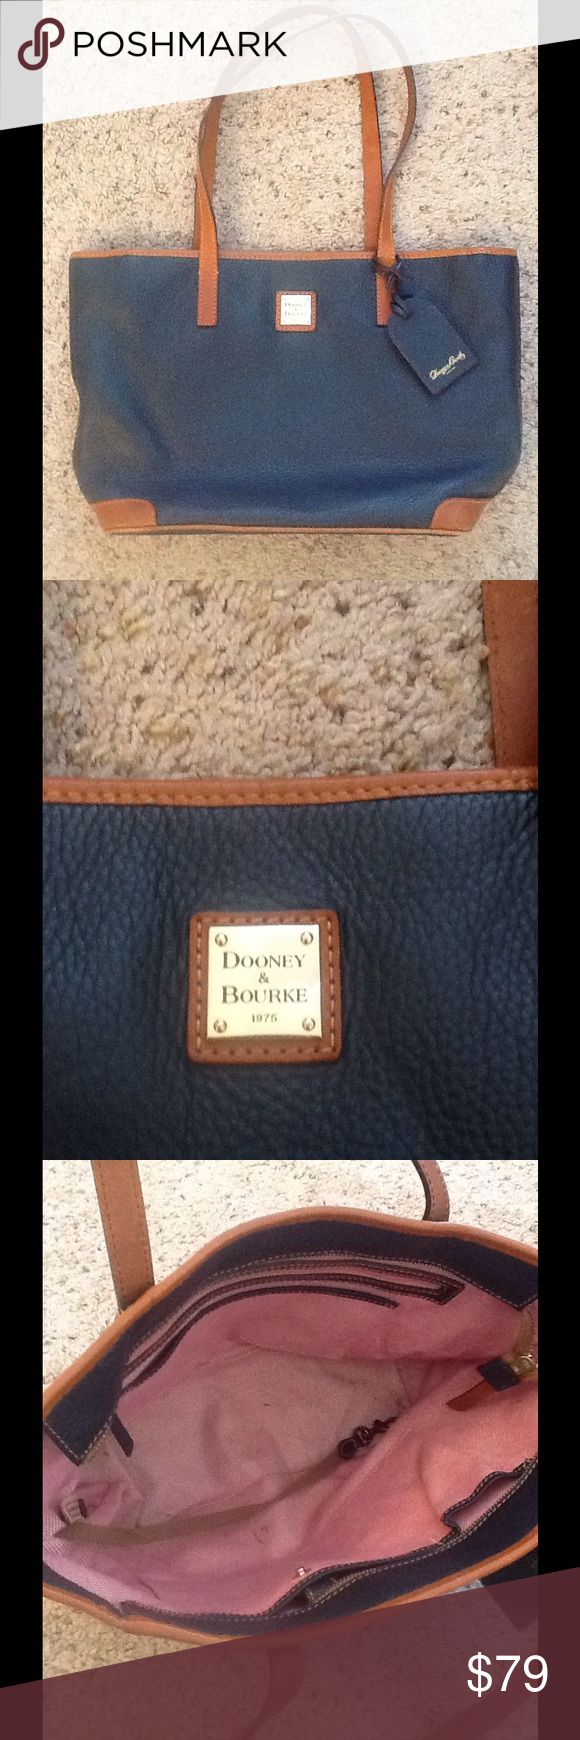 DOONEY & BOURKE NAVY BROWN LEATHER TOTE BAG PURSE DOONEY & BOURKE navy and brown leather Large Tote bag purse.  Excellent condition.  A tad of inner wear, shown.  Great gift!  I'd ship for Free!  Check out my other designer items Dooney & Bourke Bags Totes